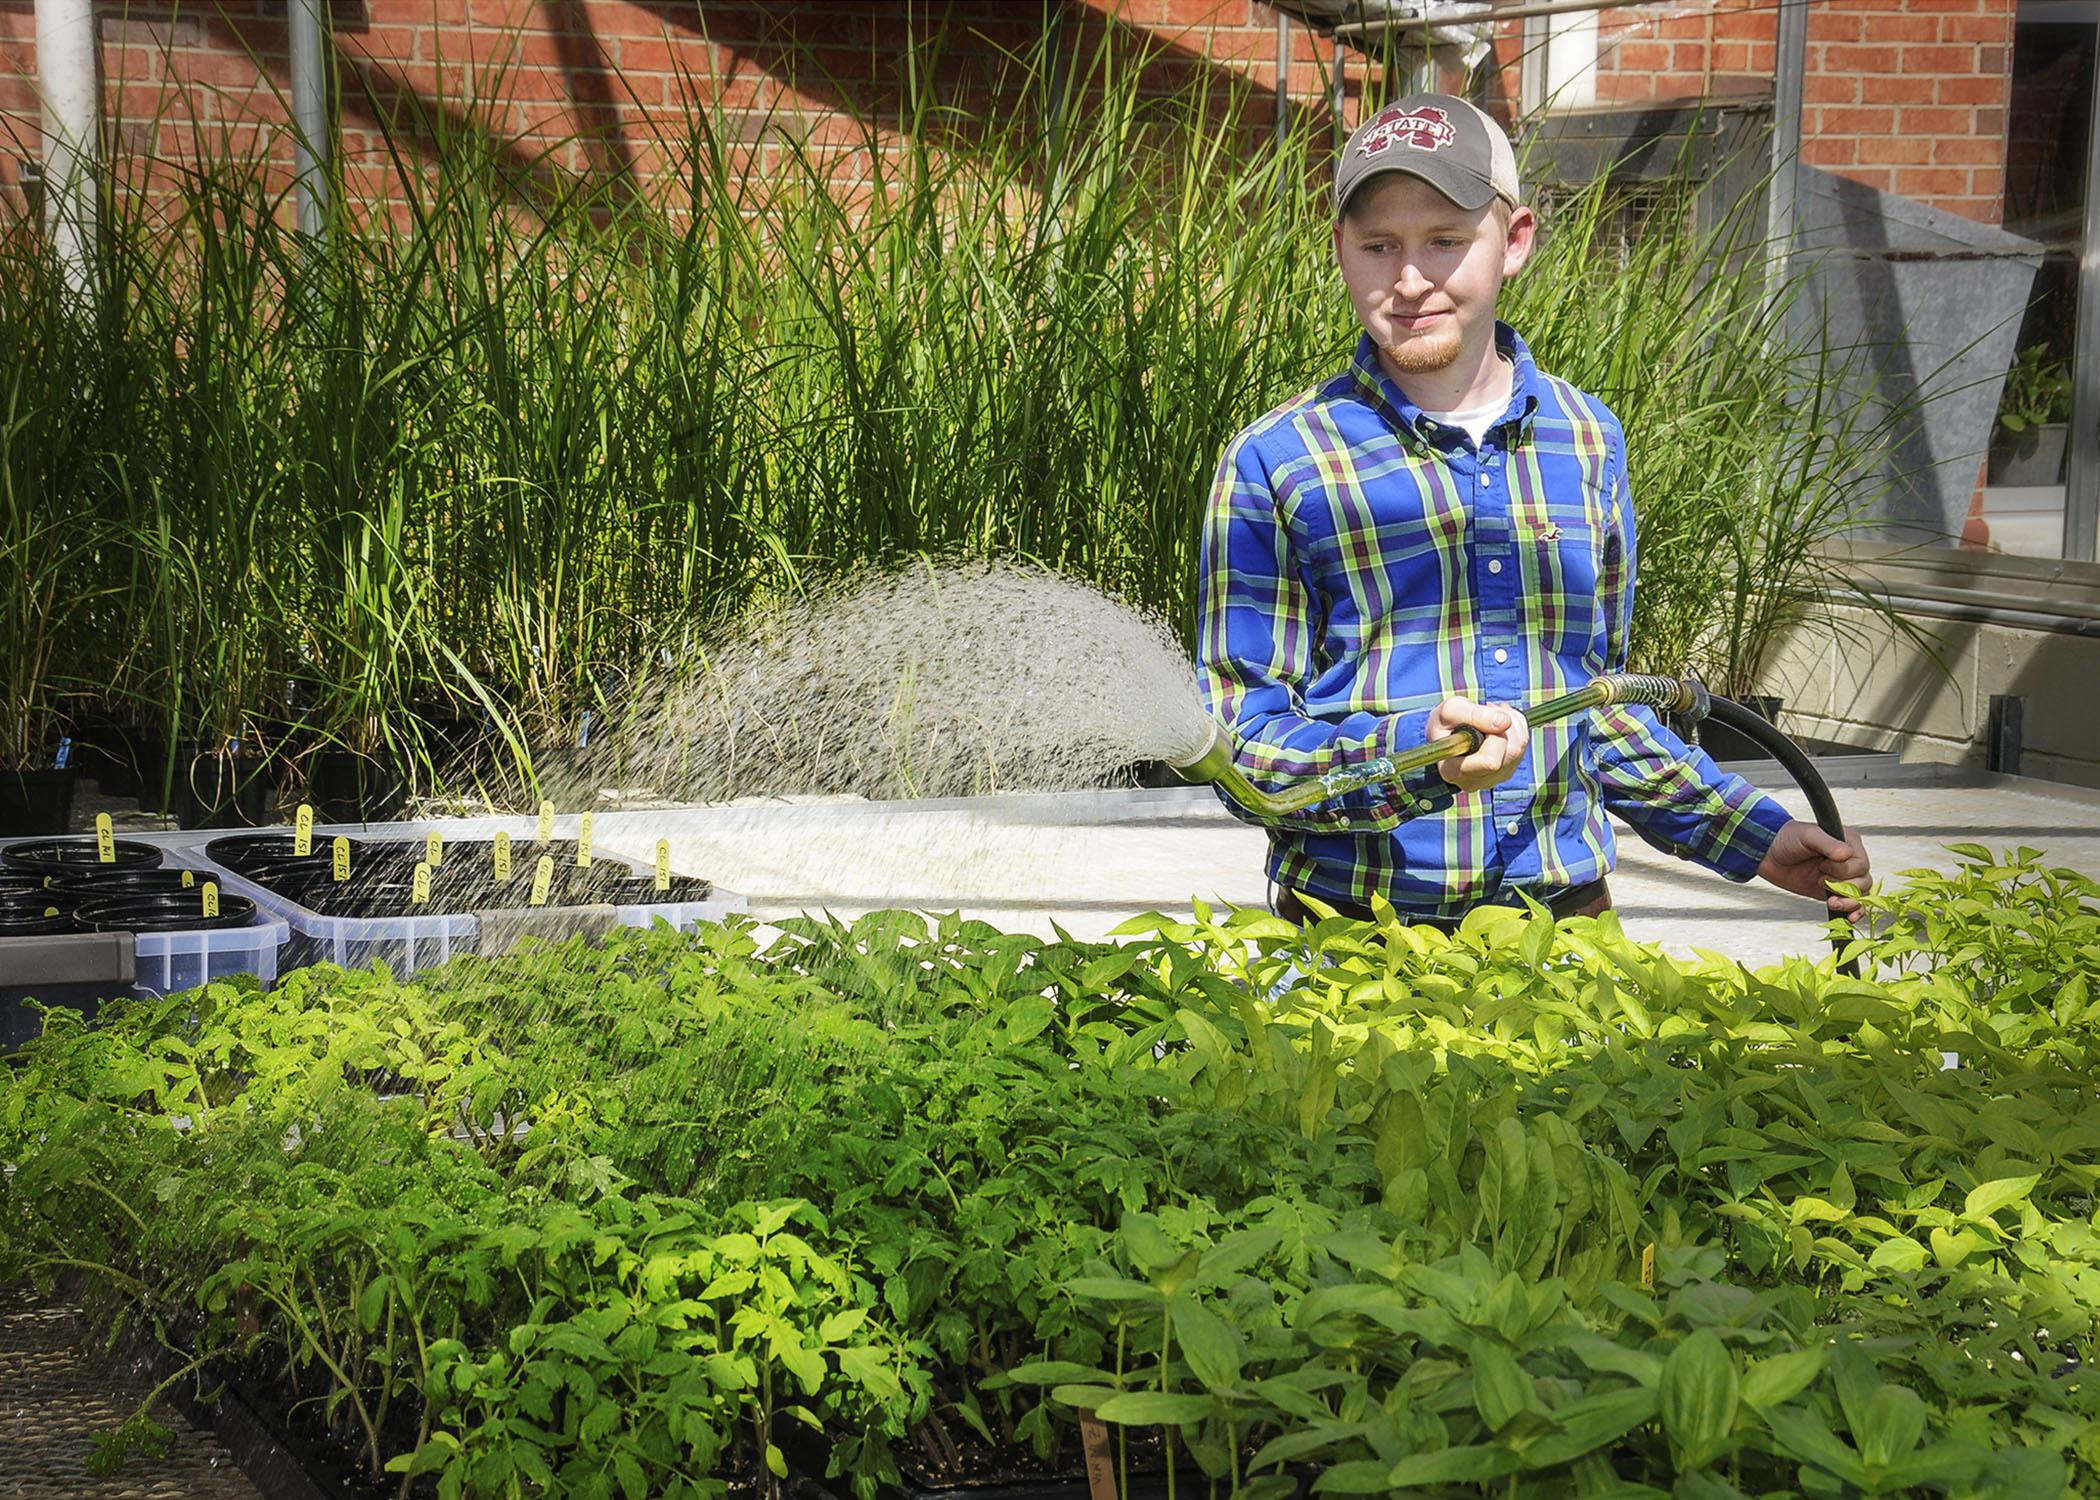 Dallas O'Bryant of West Point, a senior at Mississippi State University, waters seedlings in the greenhouses behind Dorman Hall on March 8, 2013. An agribusiness major and owner of Double D Farms, O'Bryant plans to pursue a career growing produce for local consumers. (Photo by MSU Ag Communications/Scott Corey)